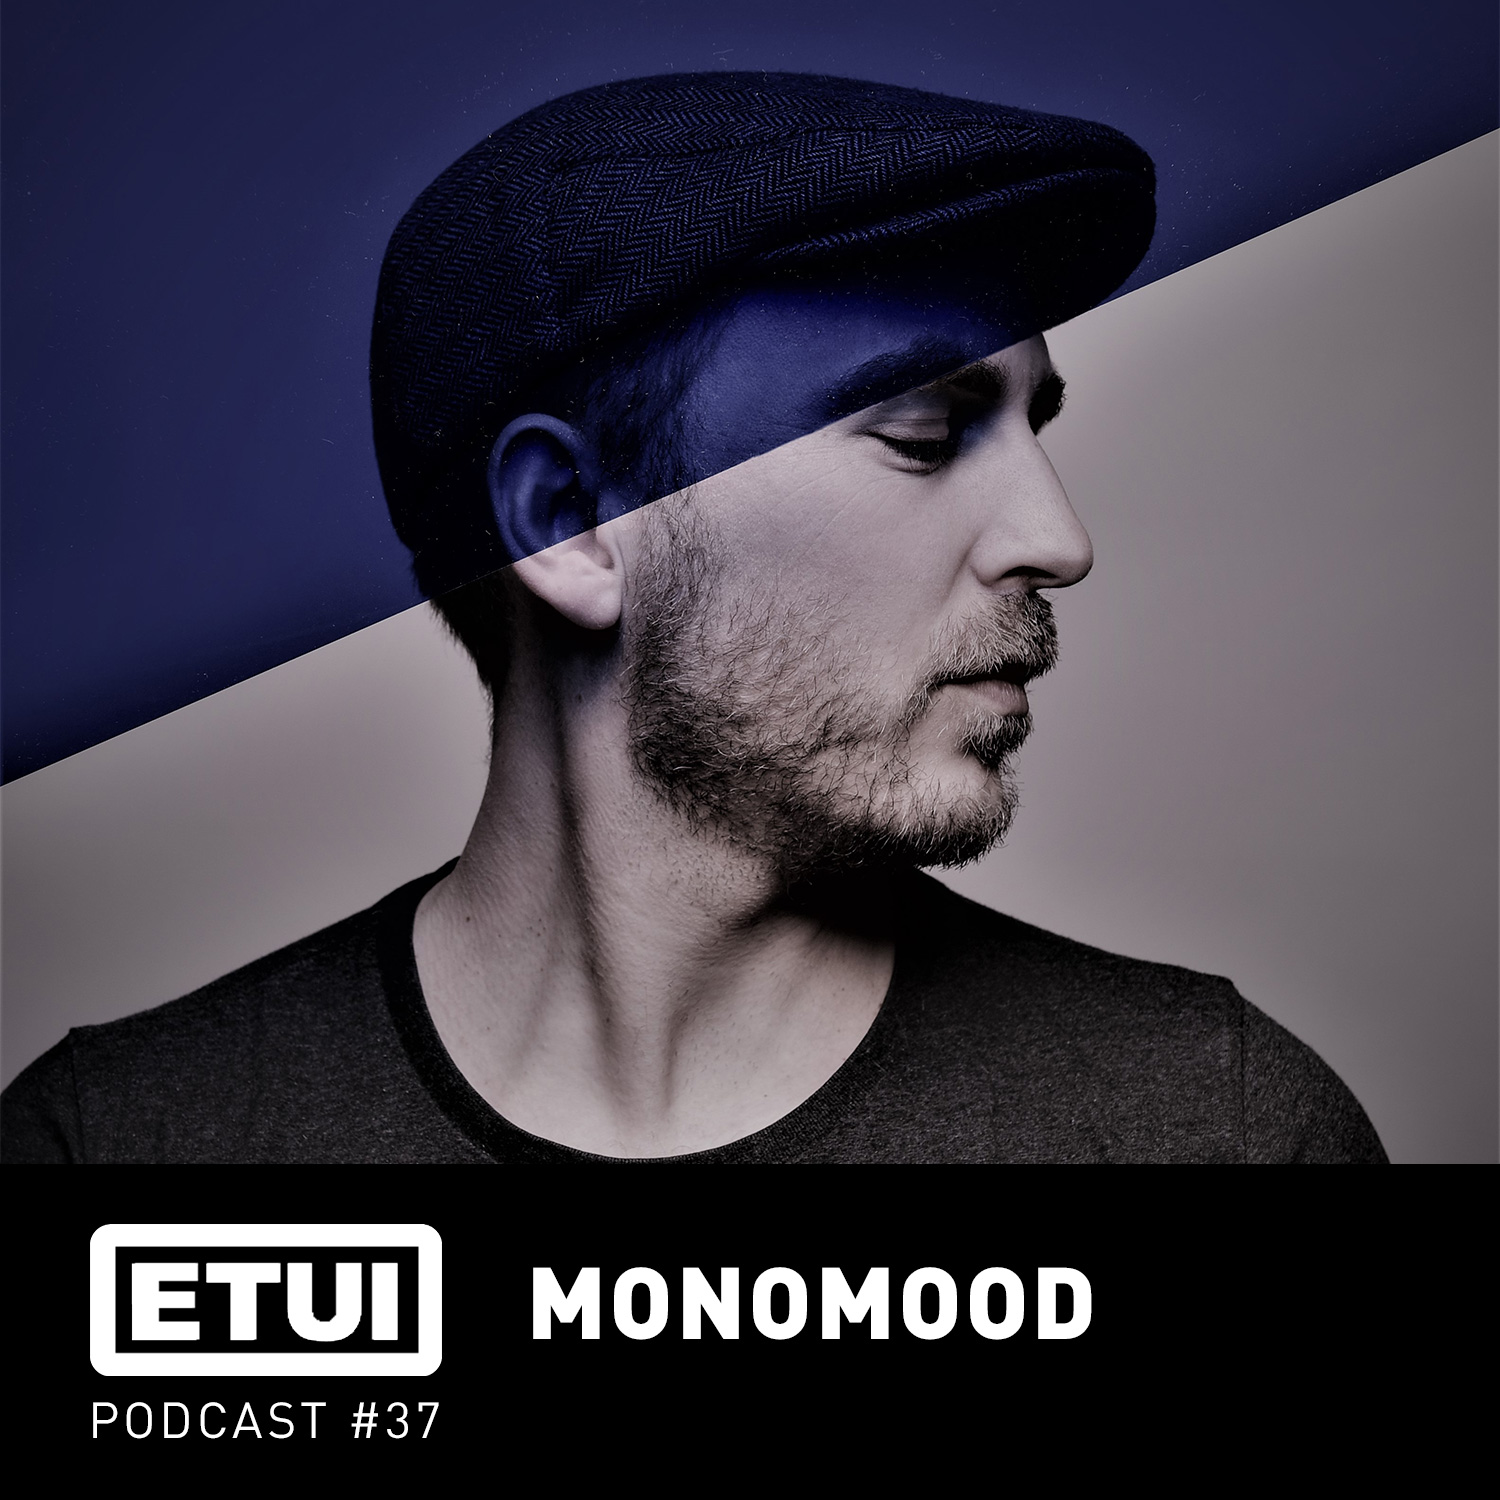 Etui Podcast #37: Monomood